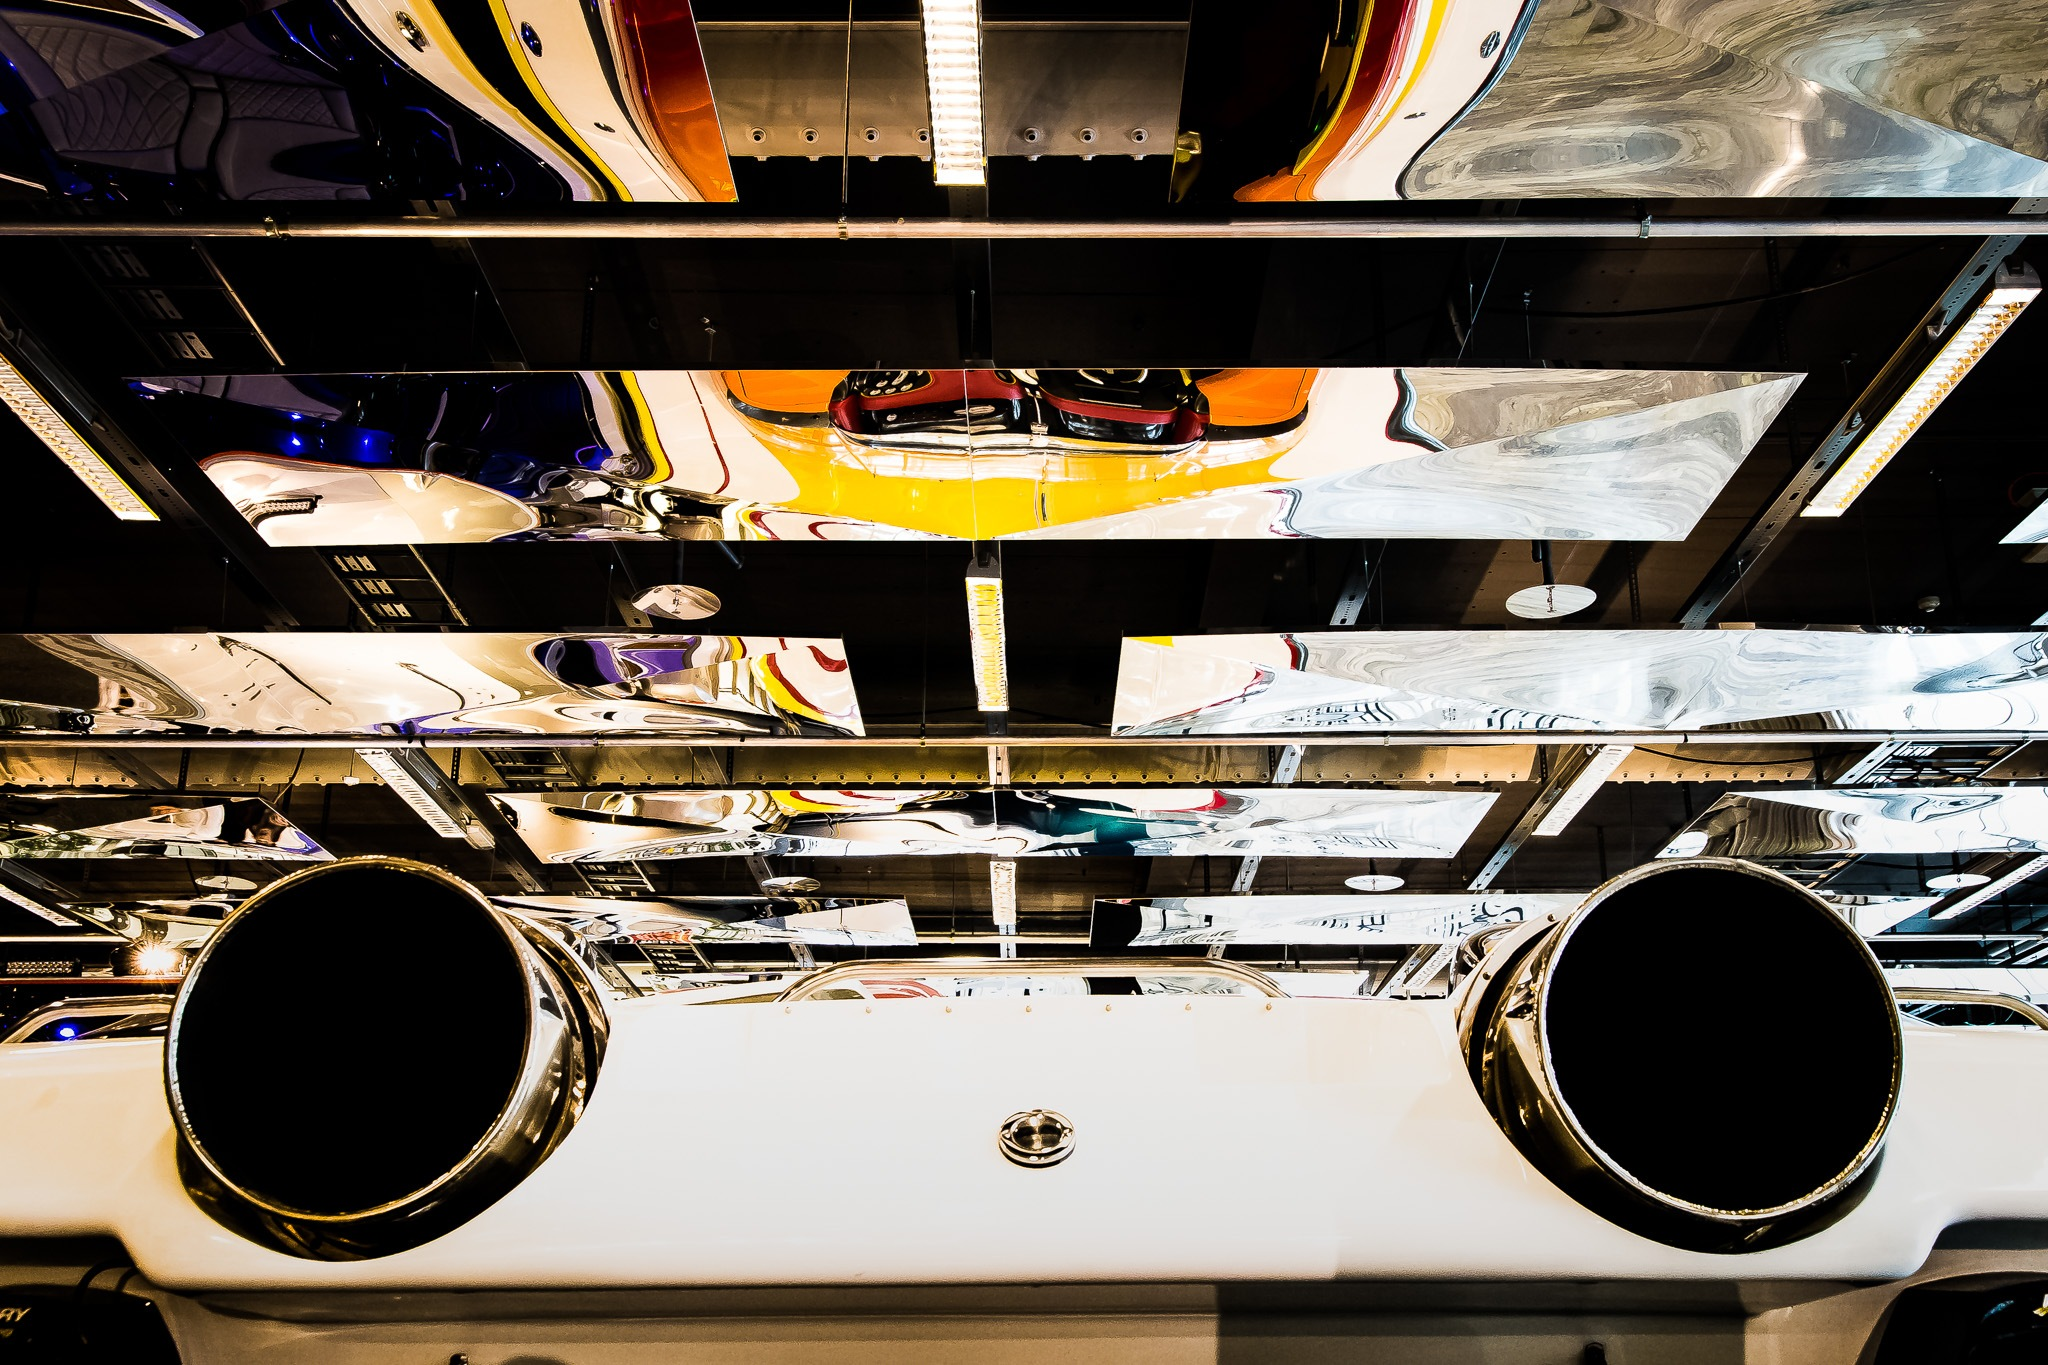 Exhaust pipe of a jet engine powered boat, while we see the boat is reflected in the ciling by Jonas Hermansson